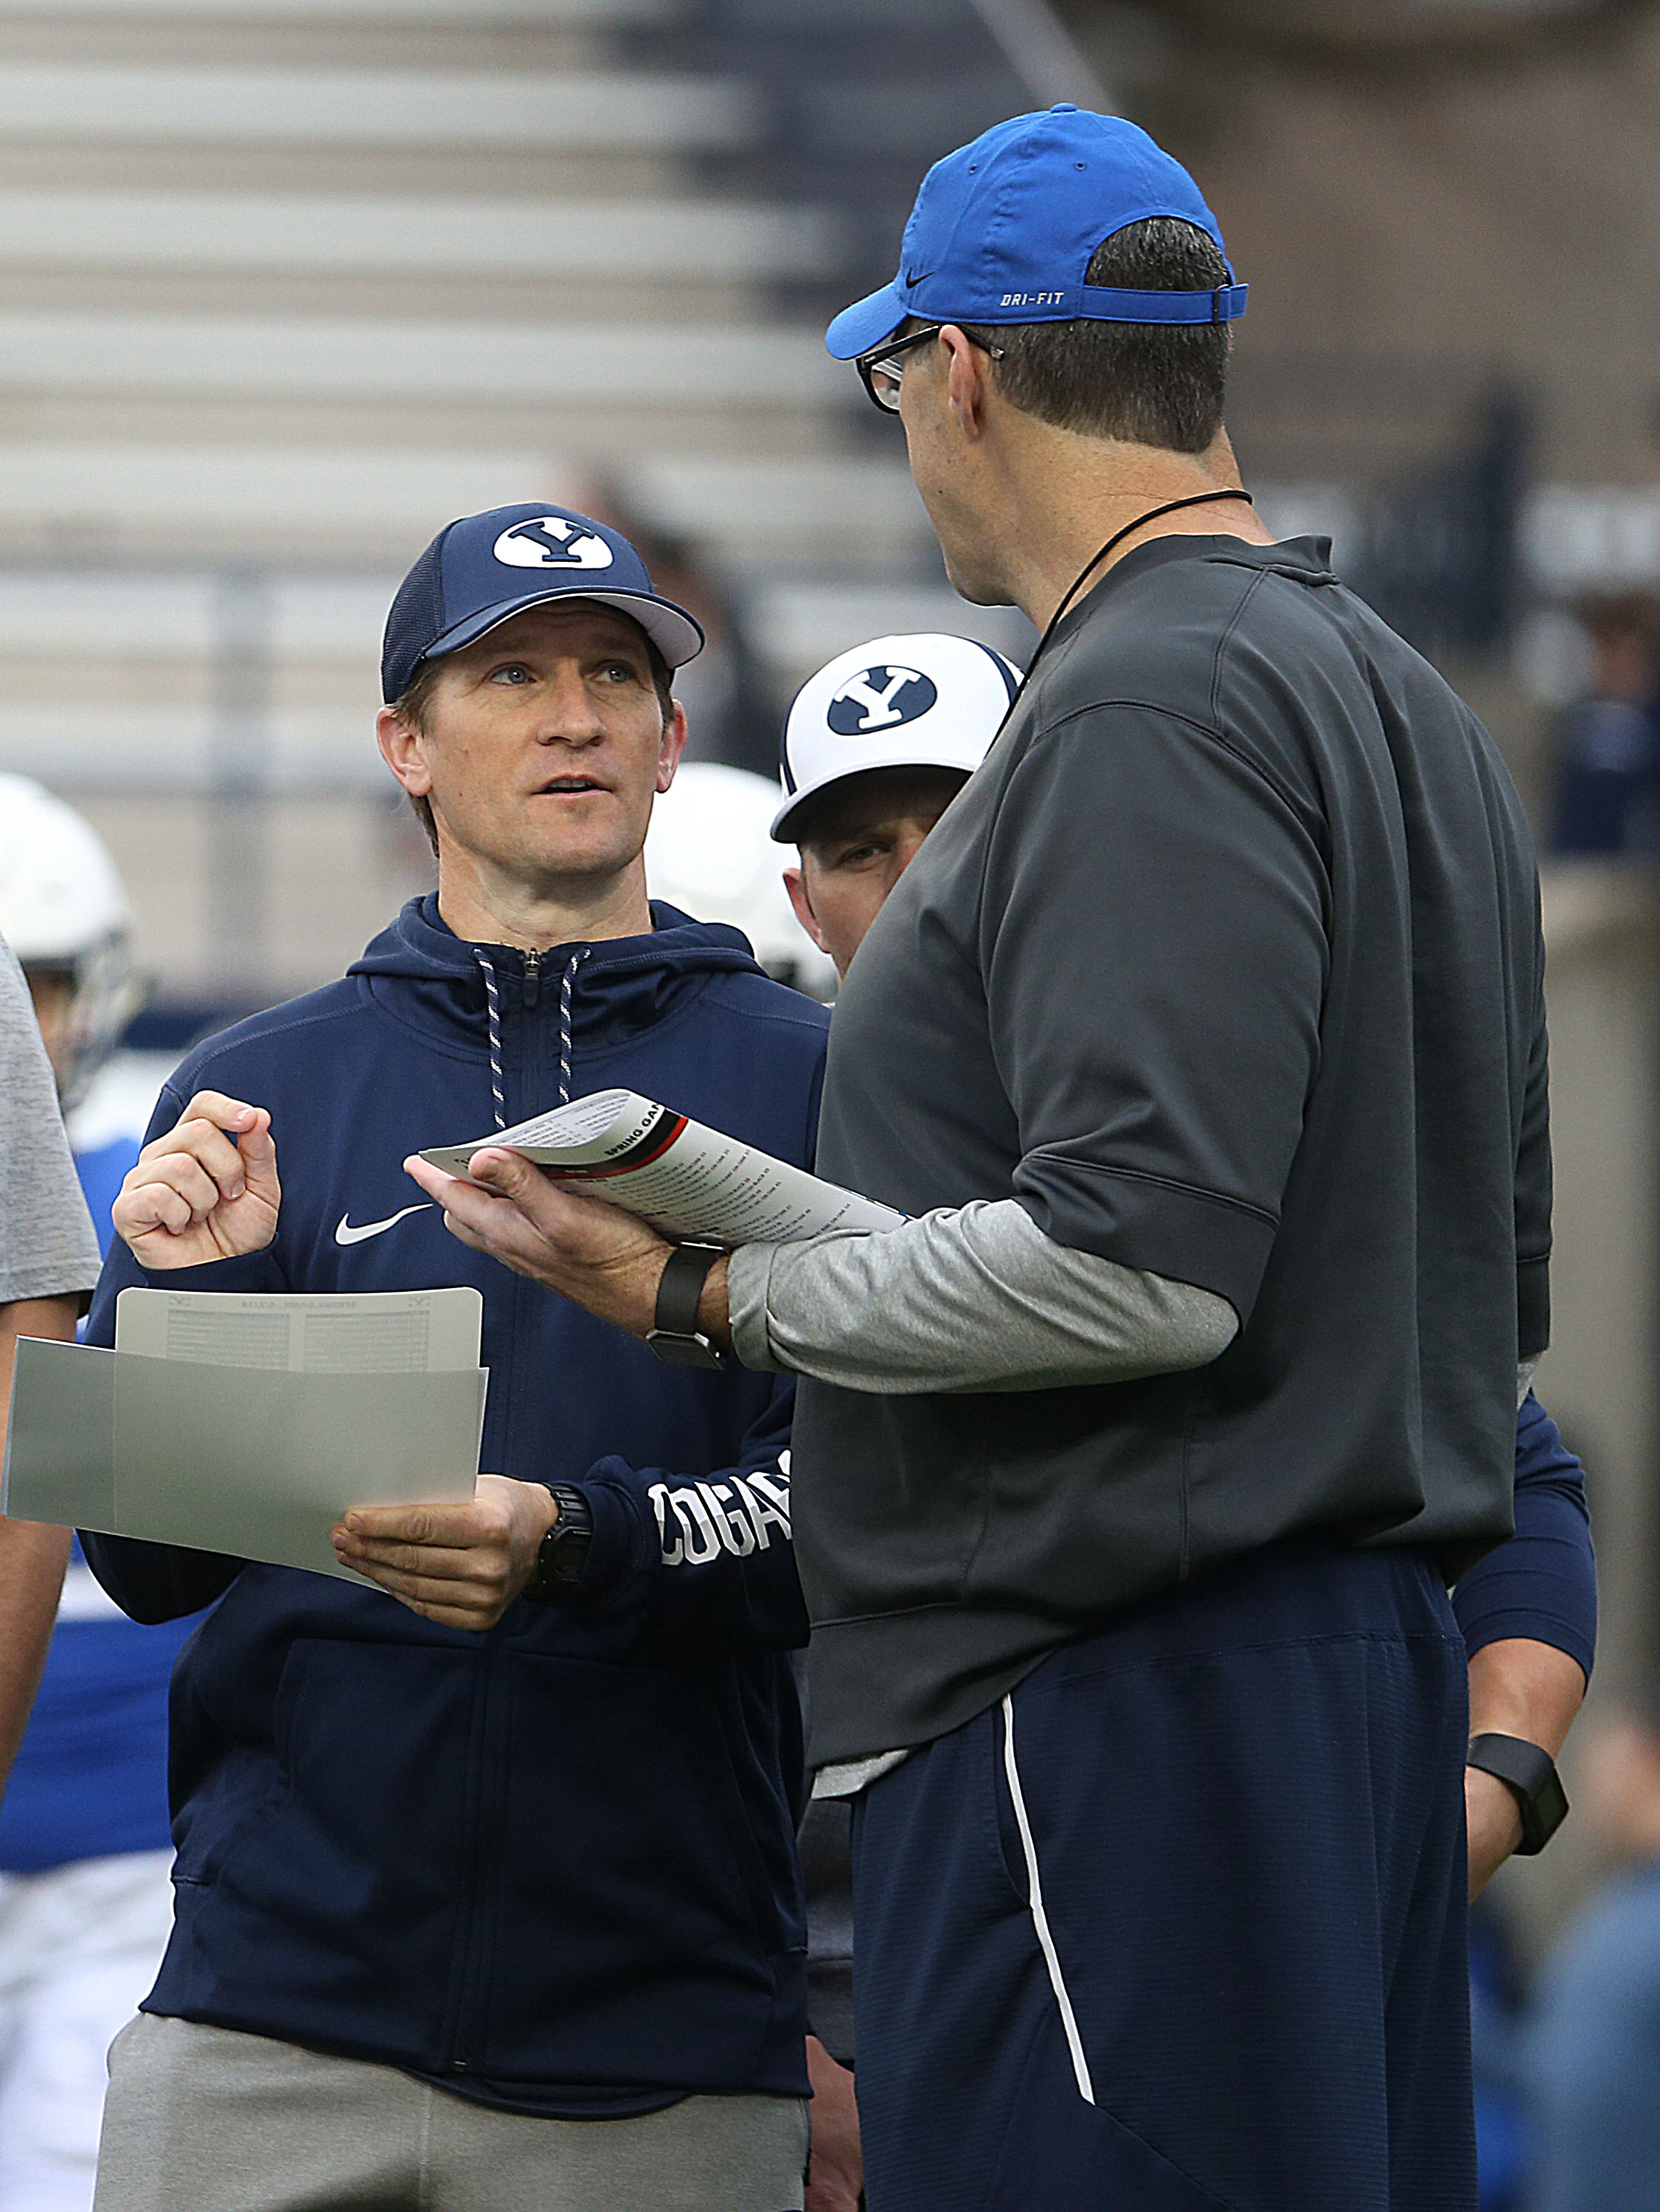 QB coach Aaron Roderick, left and offensive coordinator Jeff Grimes, right, confer during the Blue-White Game at LaVell Edwards Stadium in Provo on Saturday, April 7, 2018.